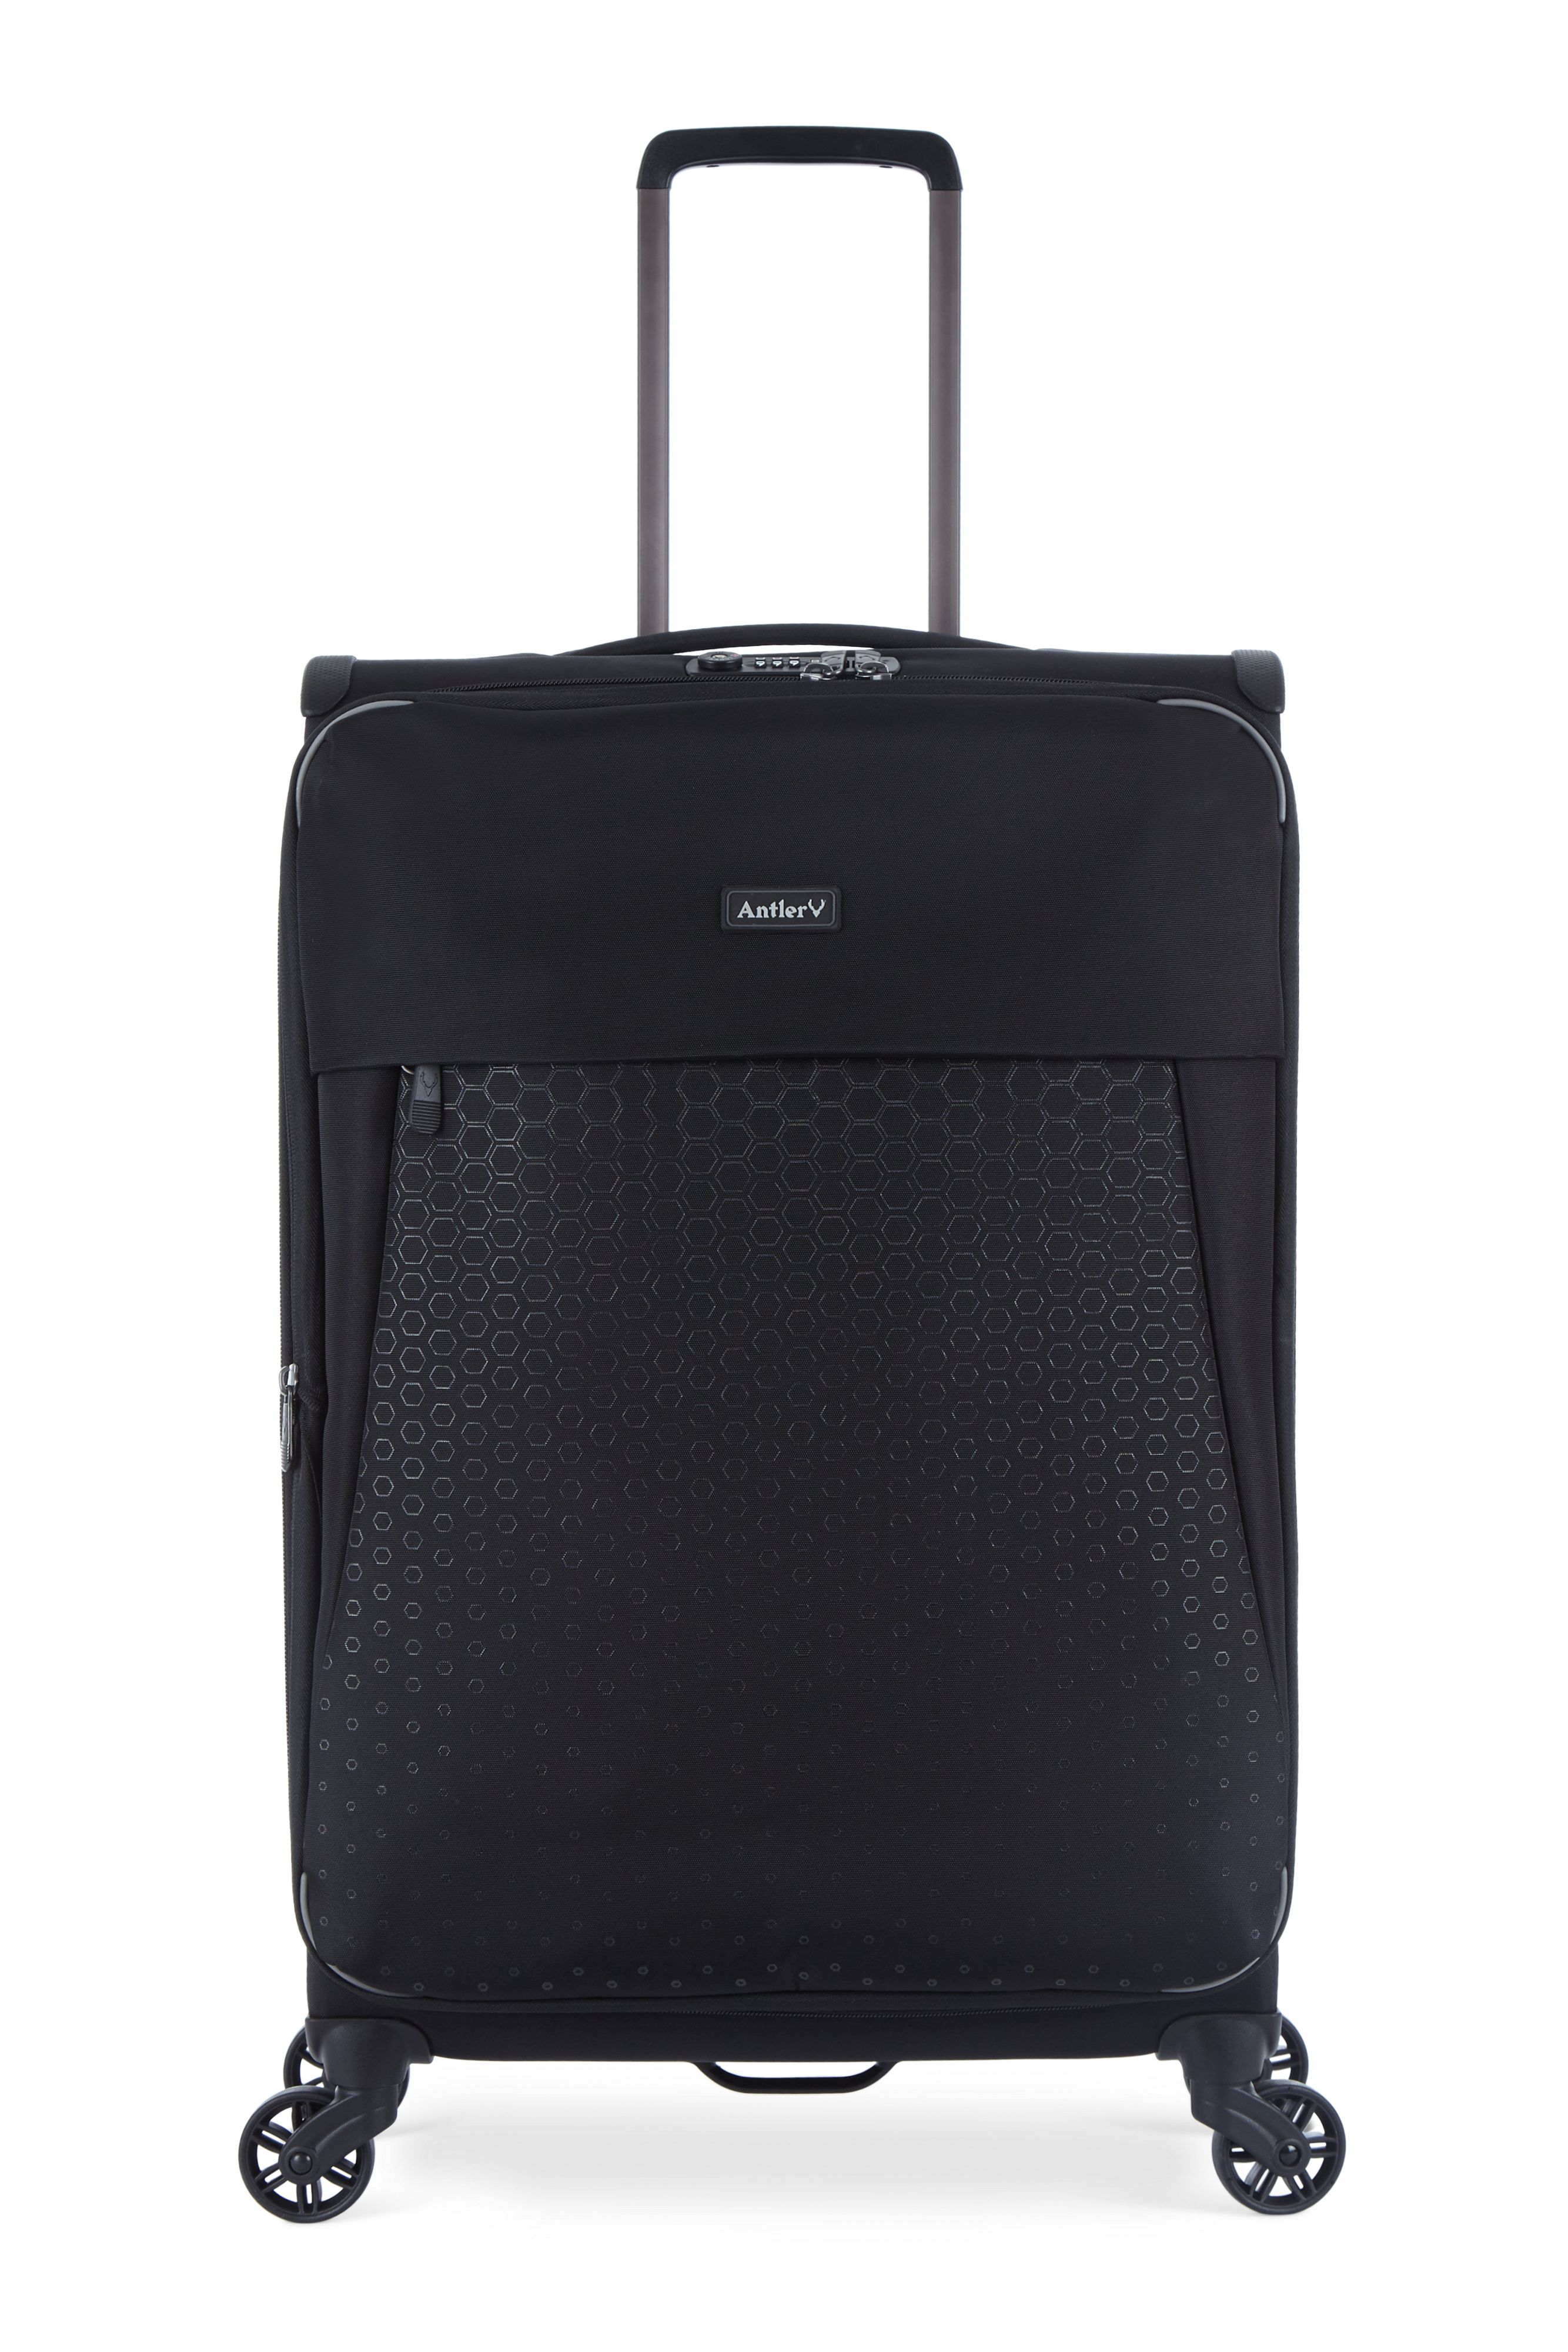 Antler Oxygen black medium 4 wheel soft suitcase Black